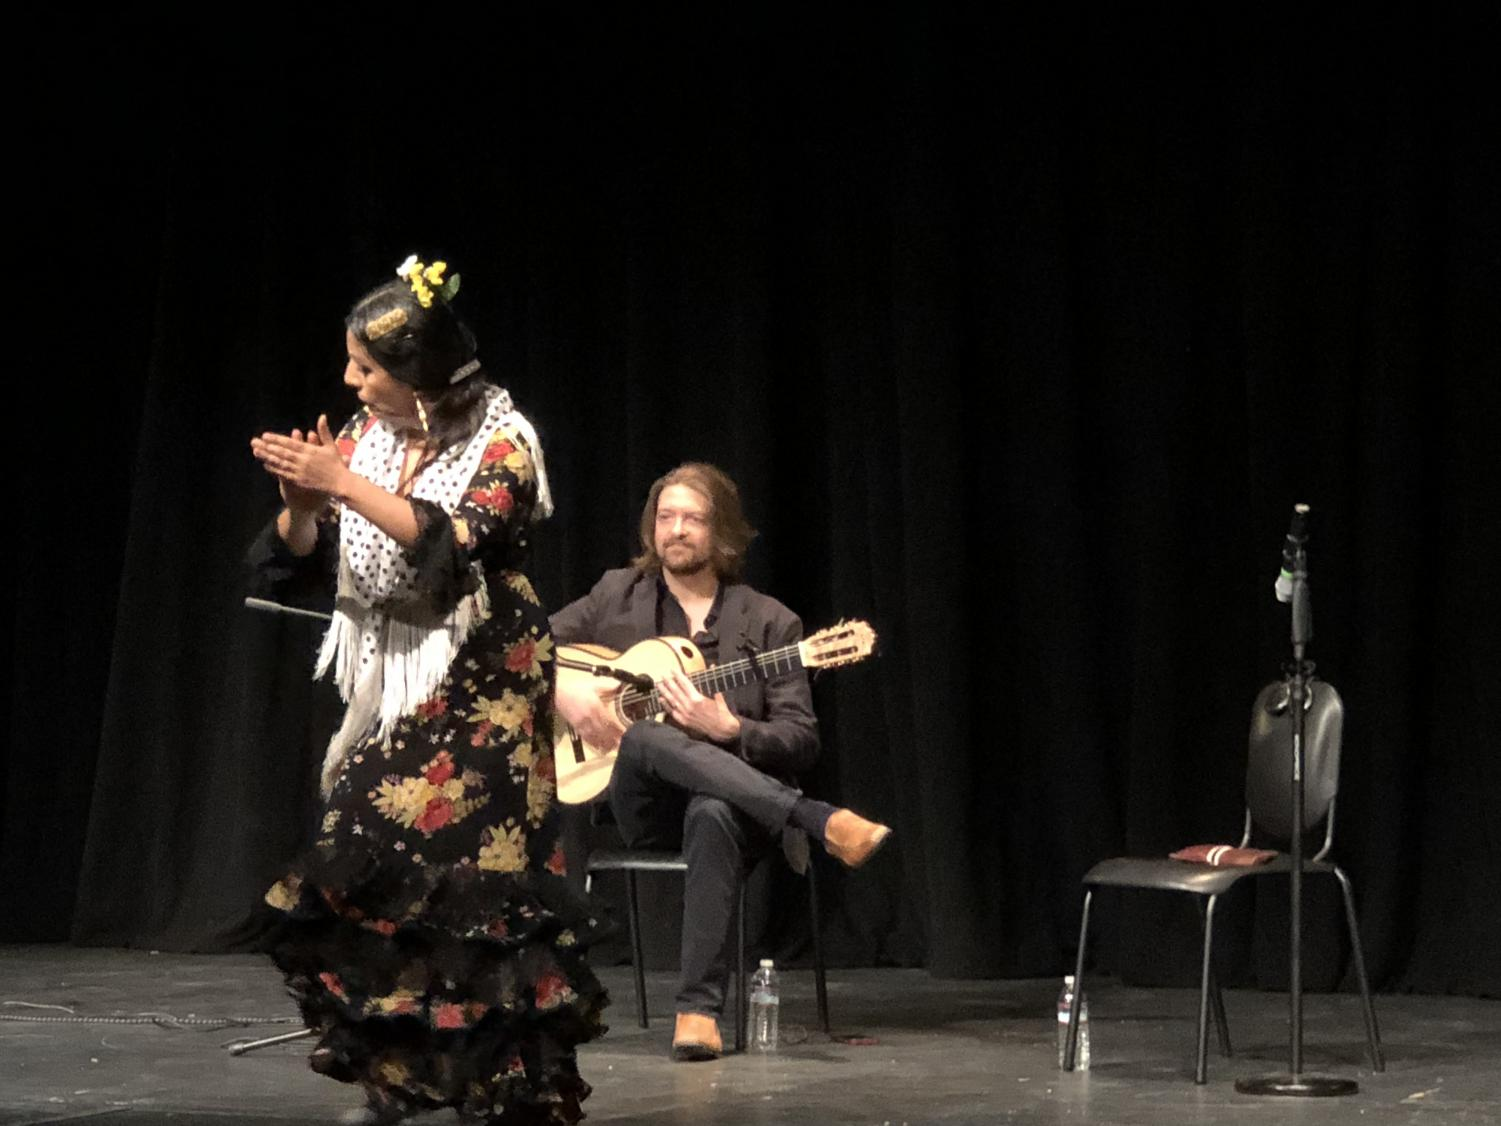 """Briseyda Zárate dances and claps her hands while Juanito Pascual plays guitar. The two performers arrived at Webb on the evening of January 30th and gave a lecture-demonstration to students about the art of flamenco dancing. Ryan Bridges ('20) said, """"It was a very interesting to learn about it and all the little details of flamenco, and I think the people they chose for this performance were very good."""""""